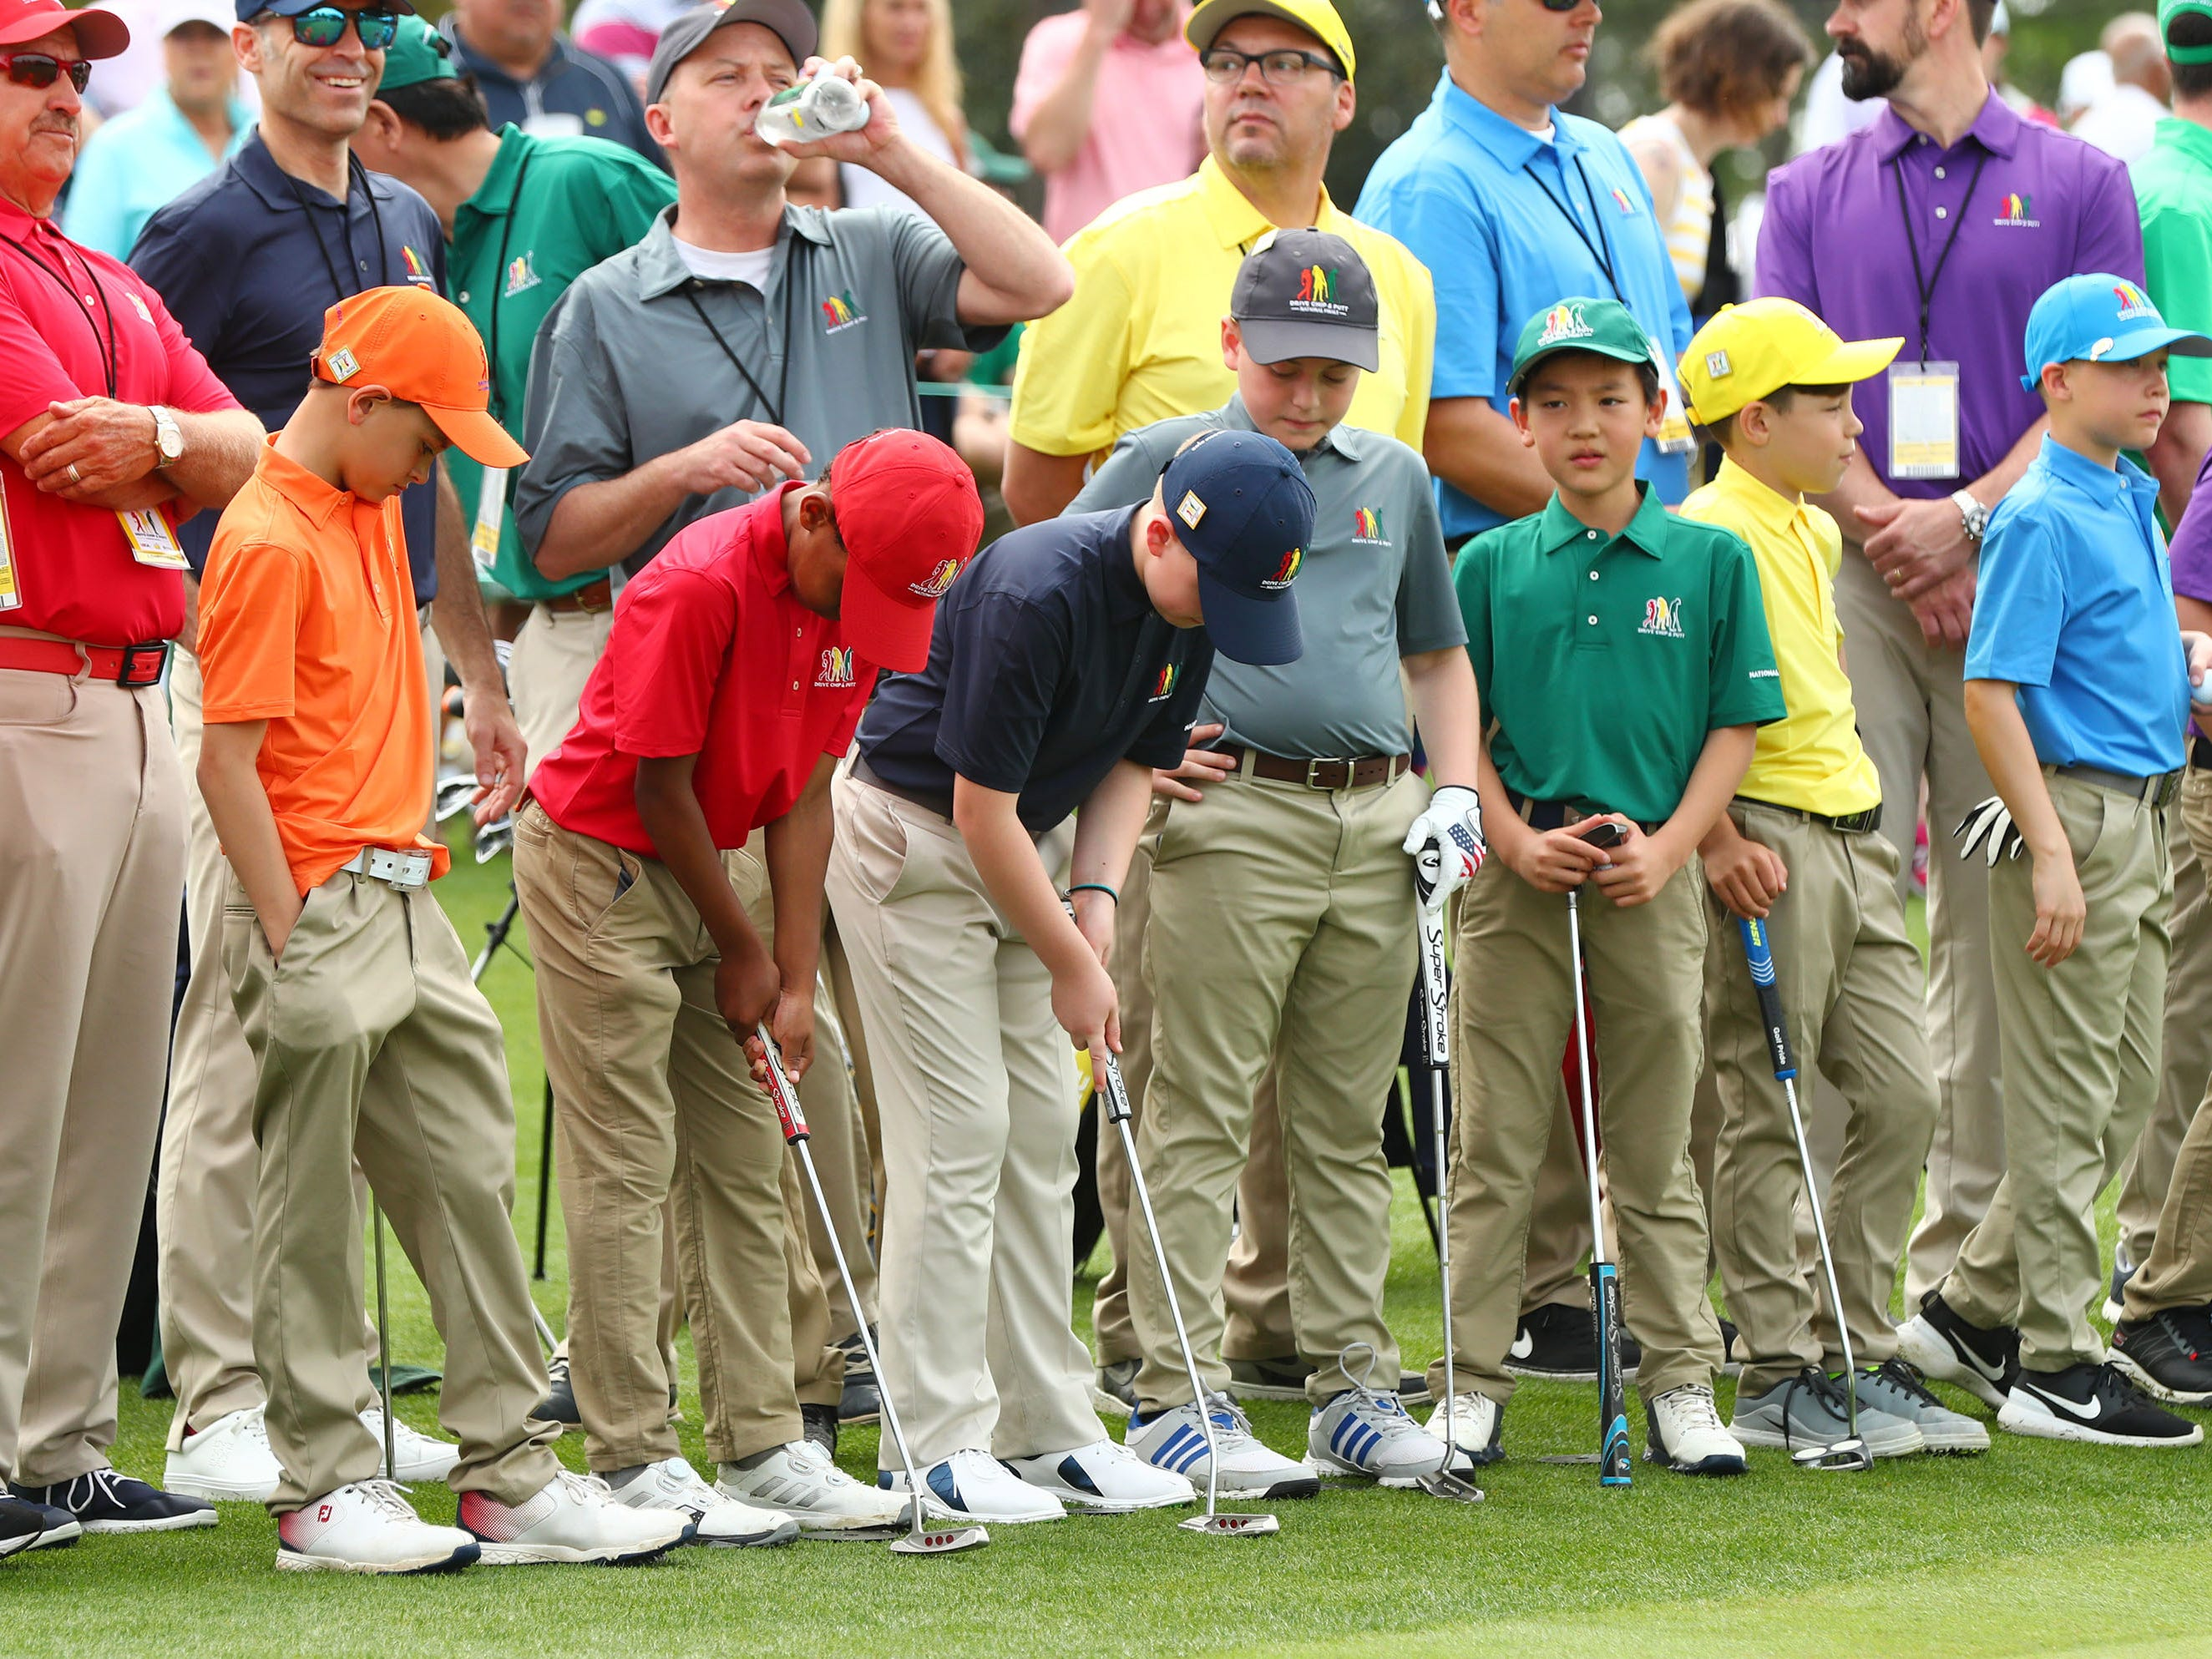 Apr 7, 2019; Augusta, GA, USA; The boys 7-9 age group prepare for their turn to putt during the finals of the Drive, Chip and Putt competition at Augusta National Golf Club. Mandatory Credit: Rob Schumacher-USA TODAY Sports